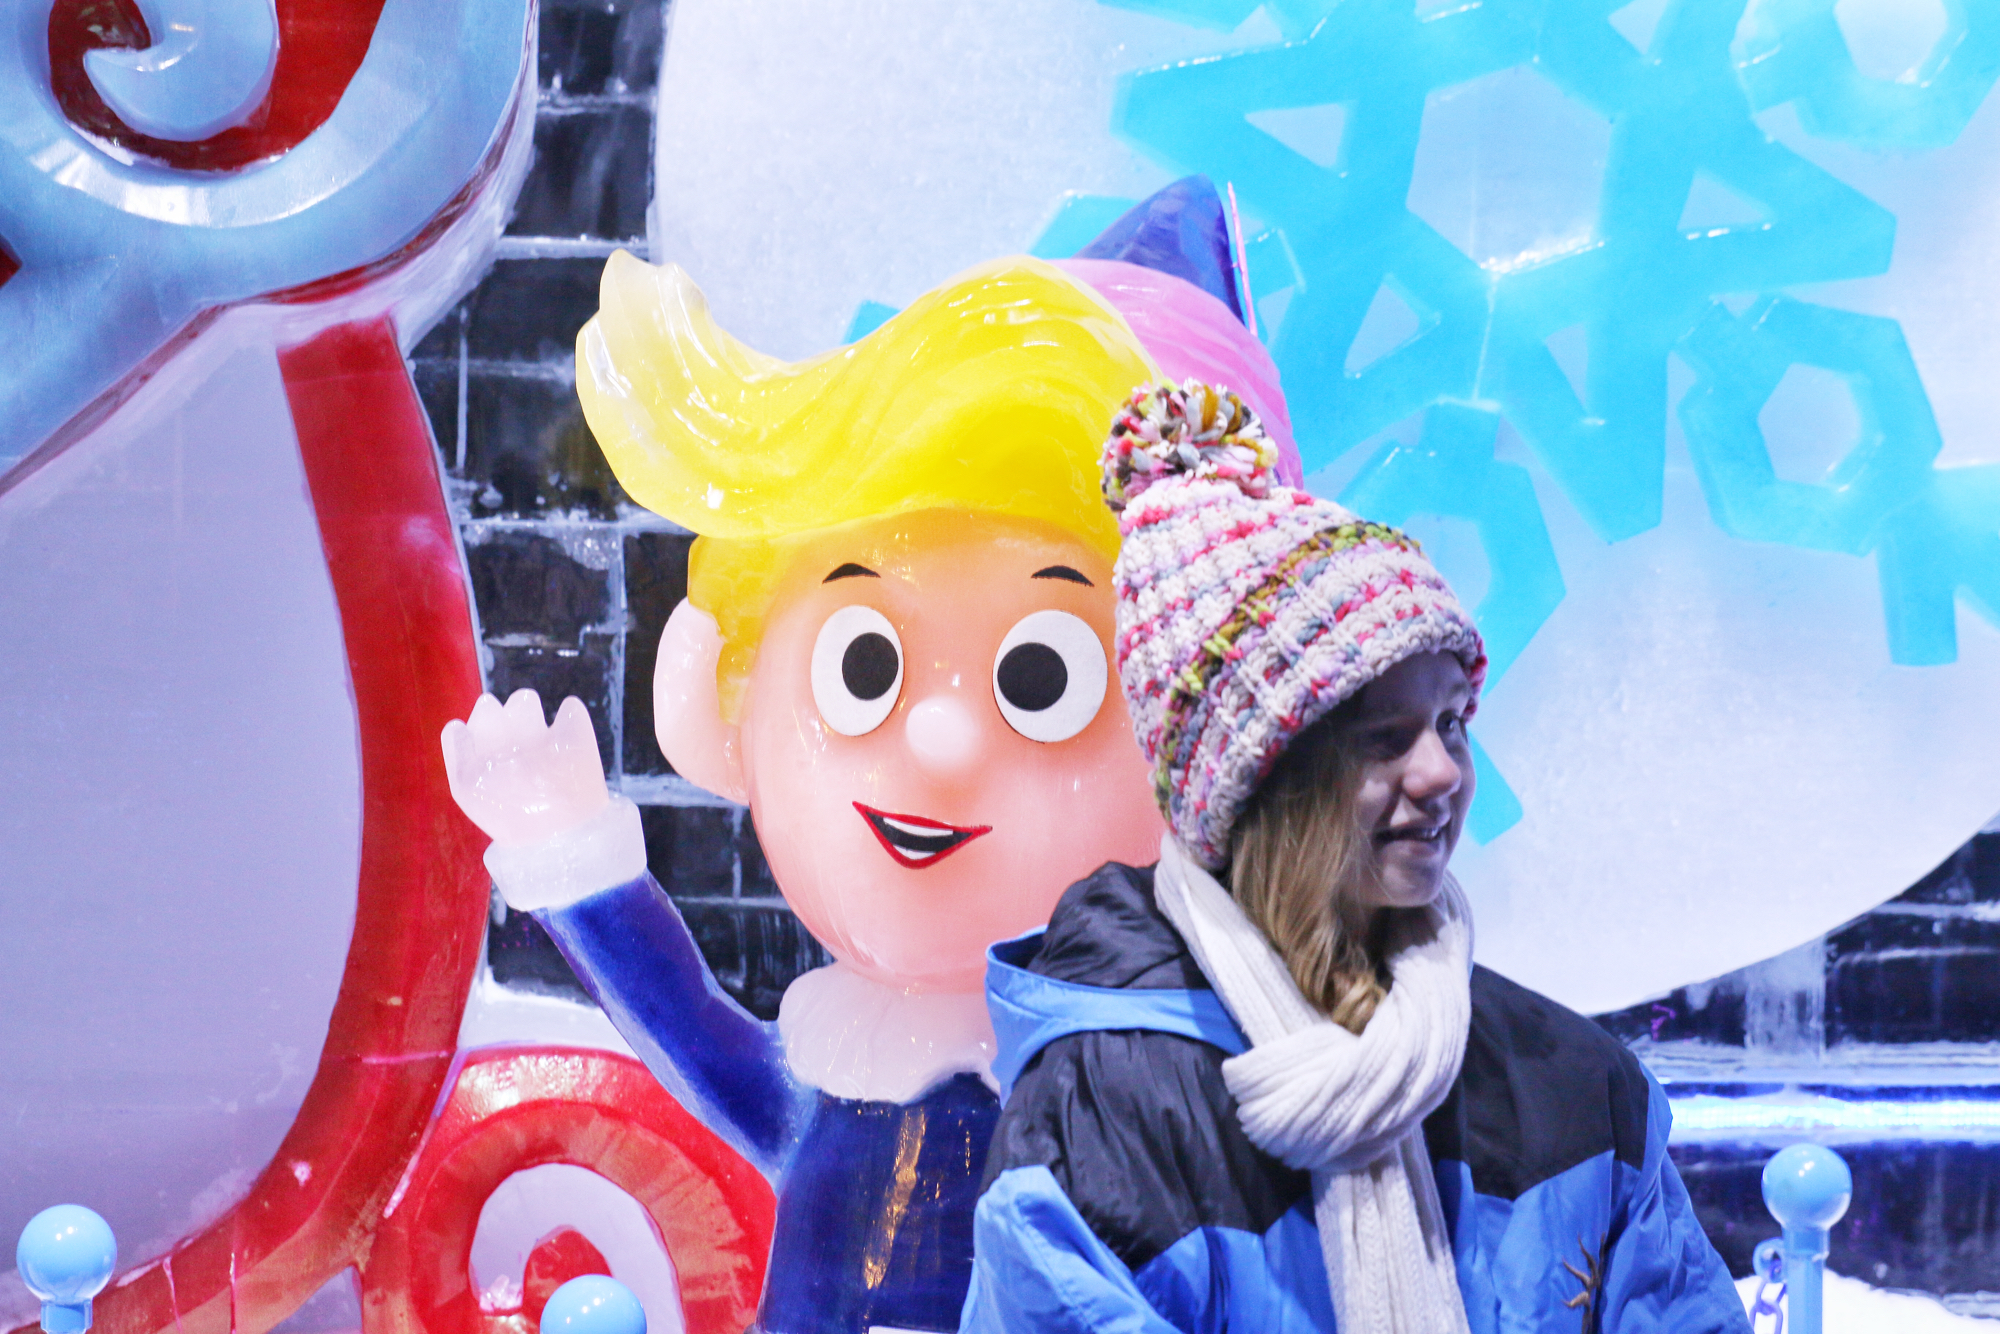 Gabby in Ice at Gaylord Texan exhibit